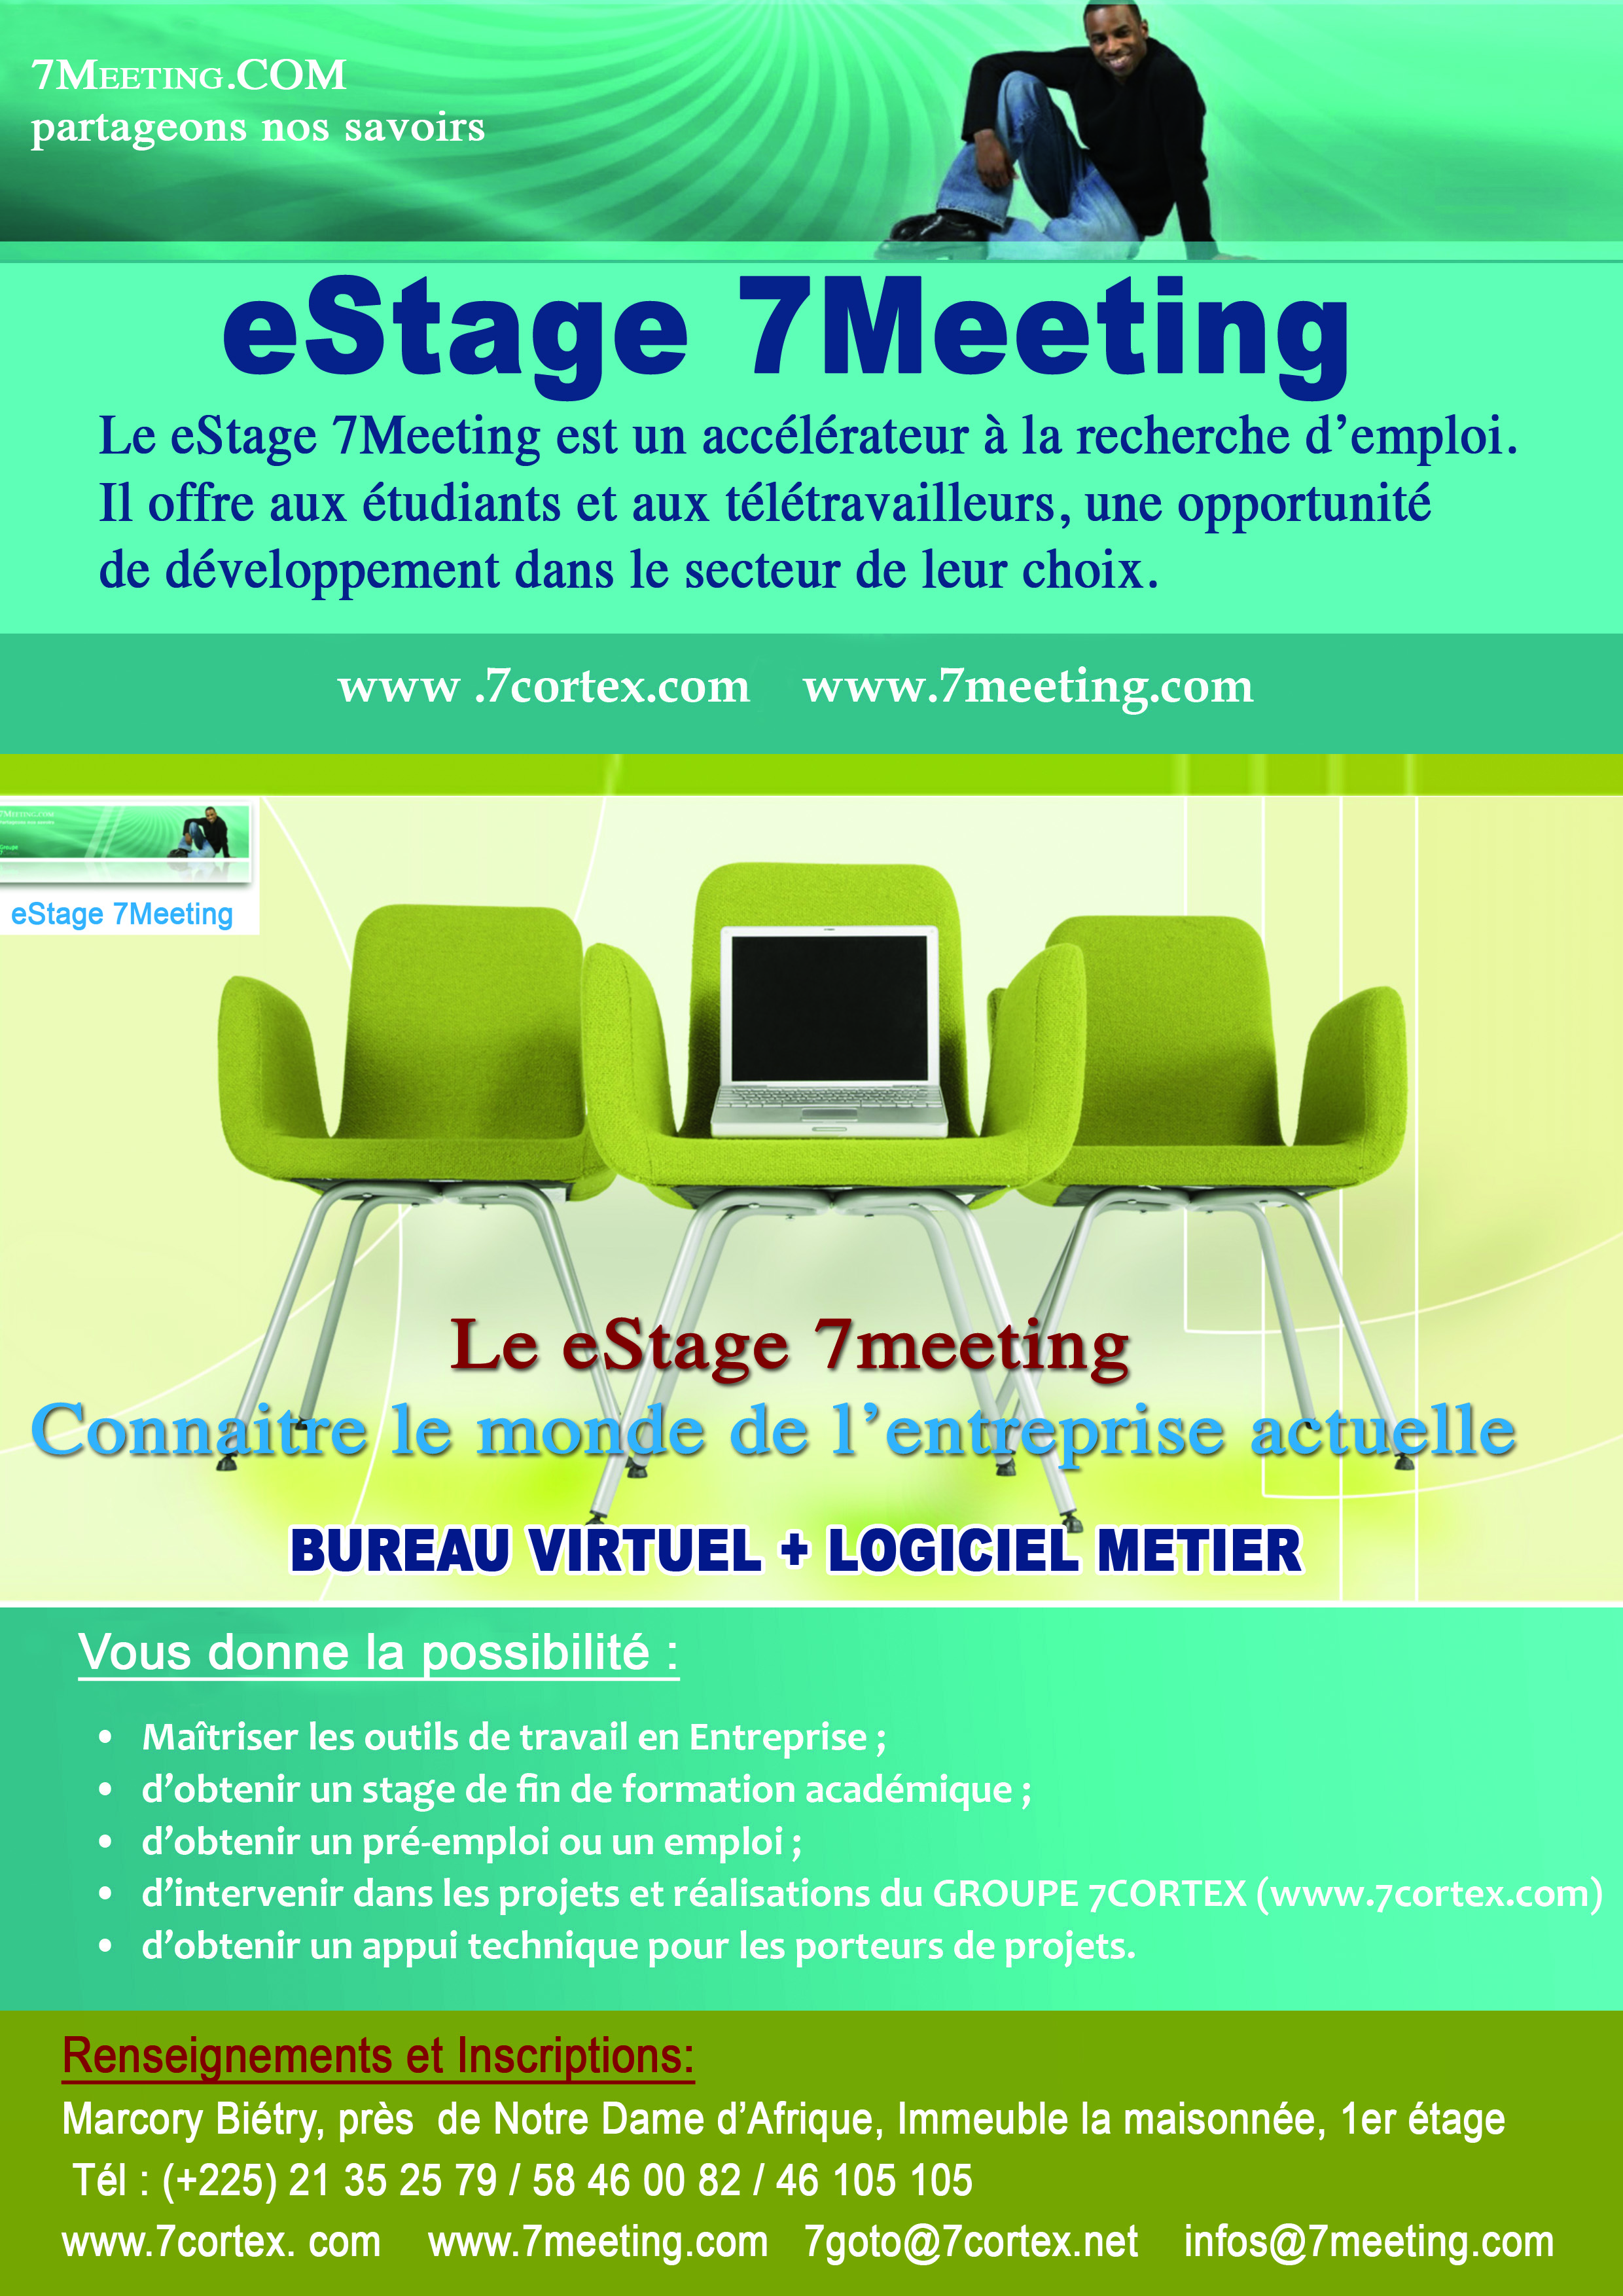 affiche estage 7meeting